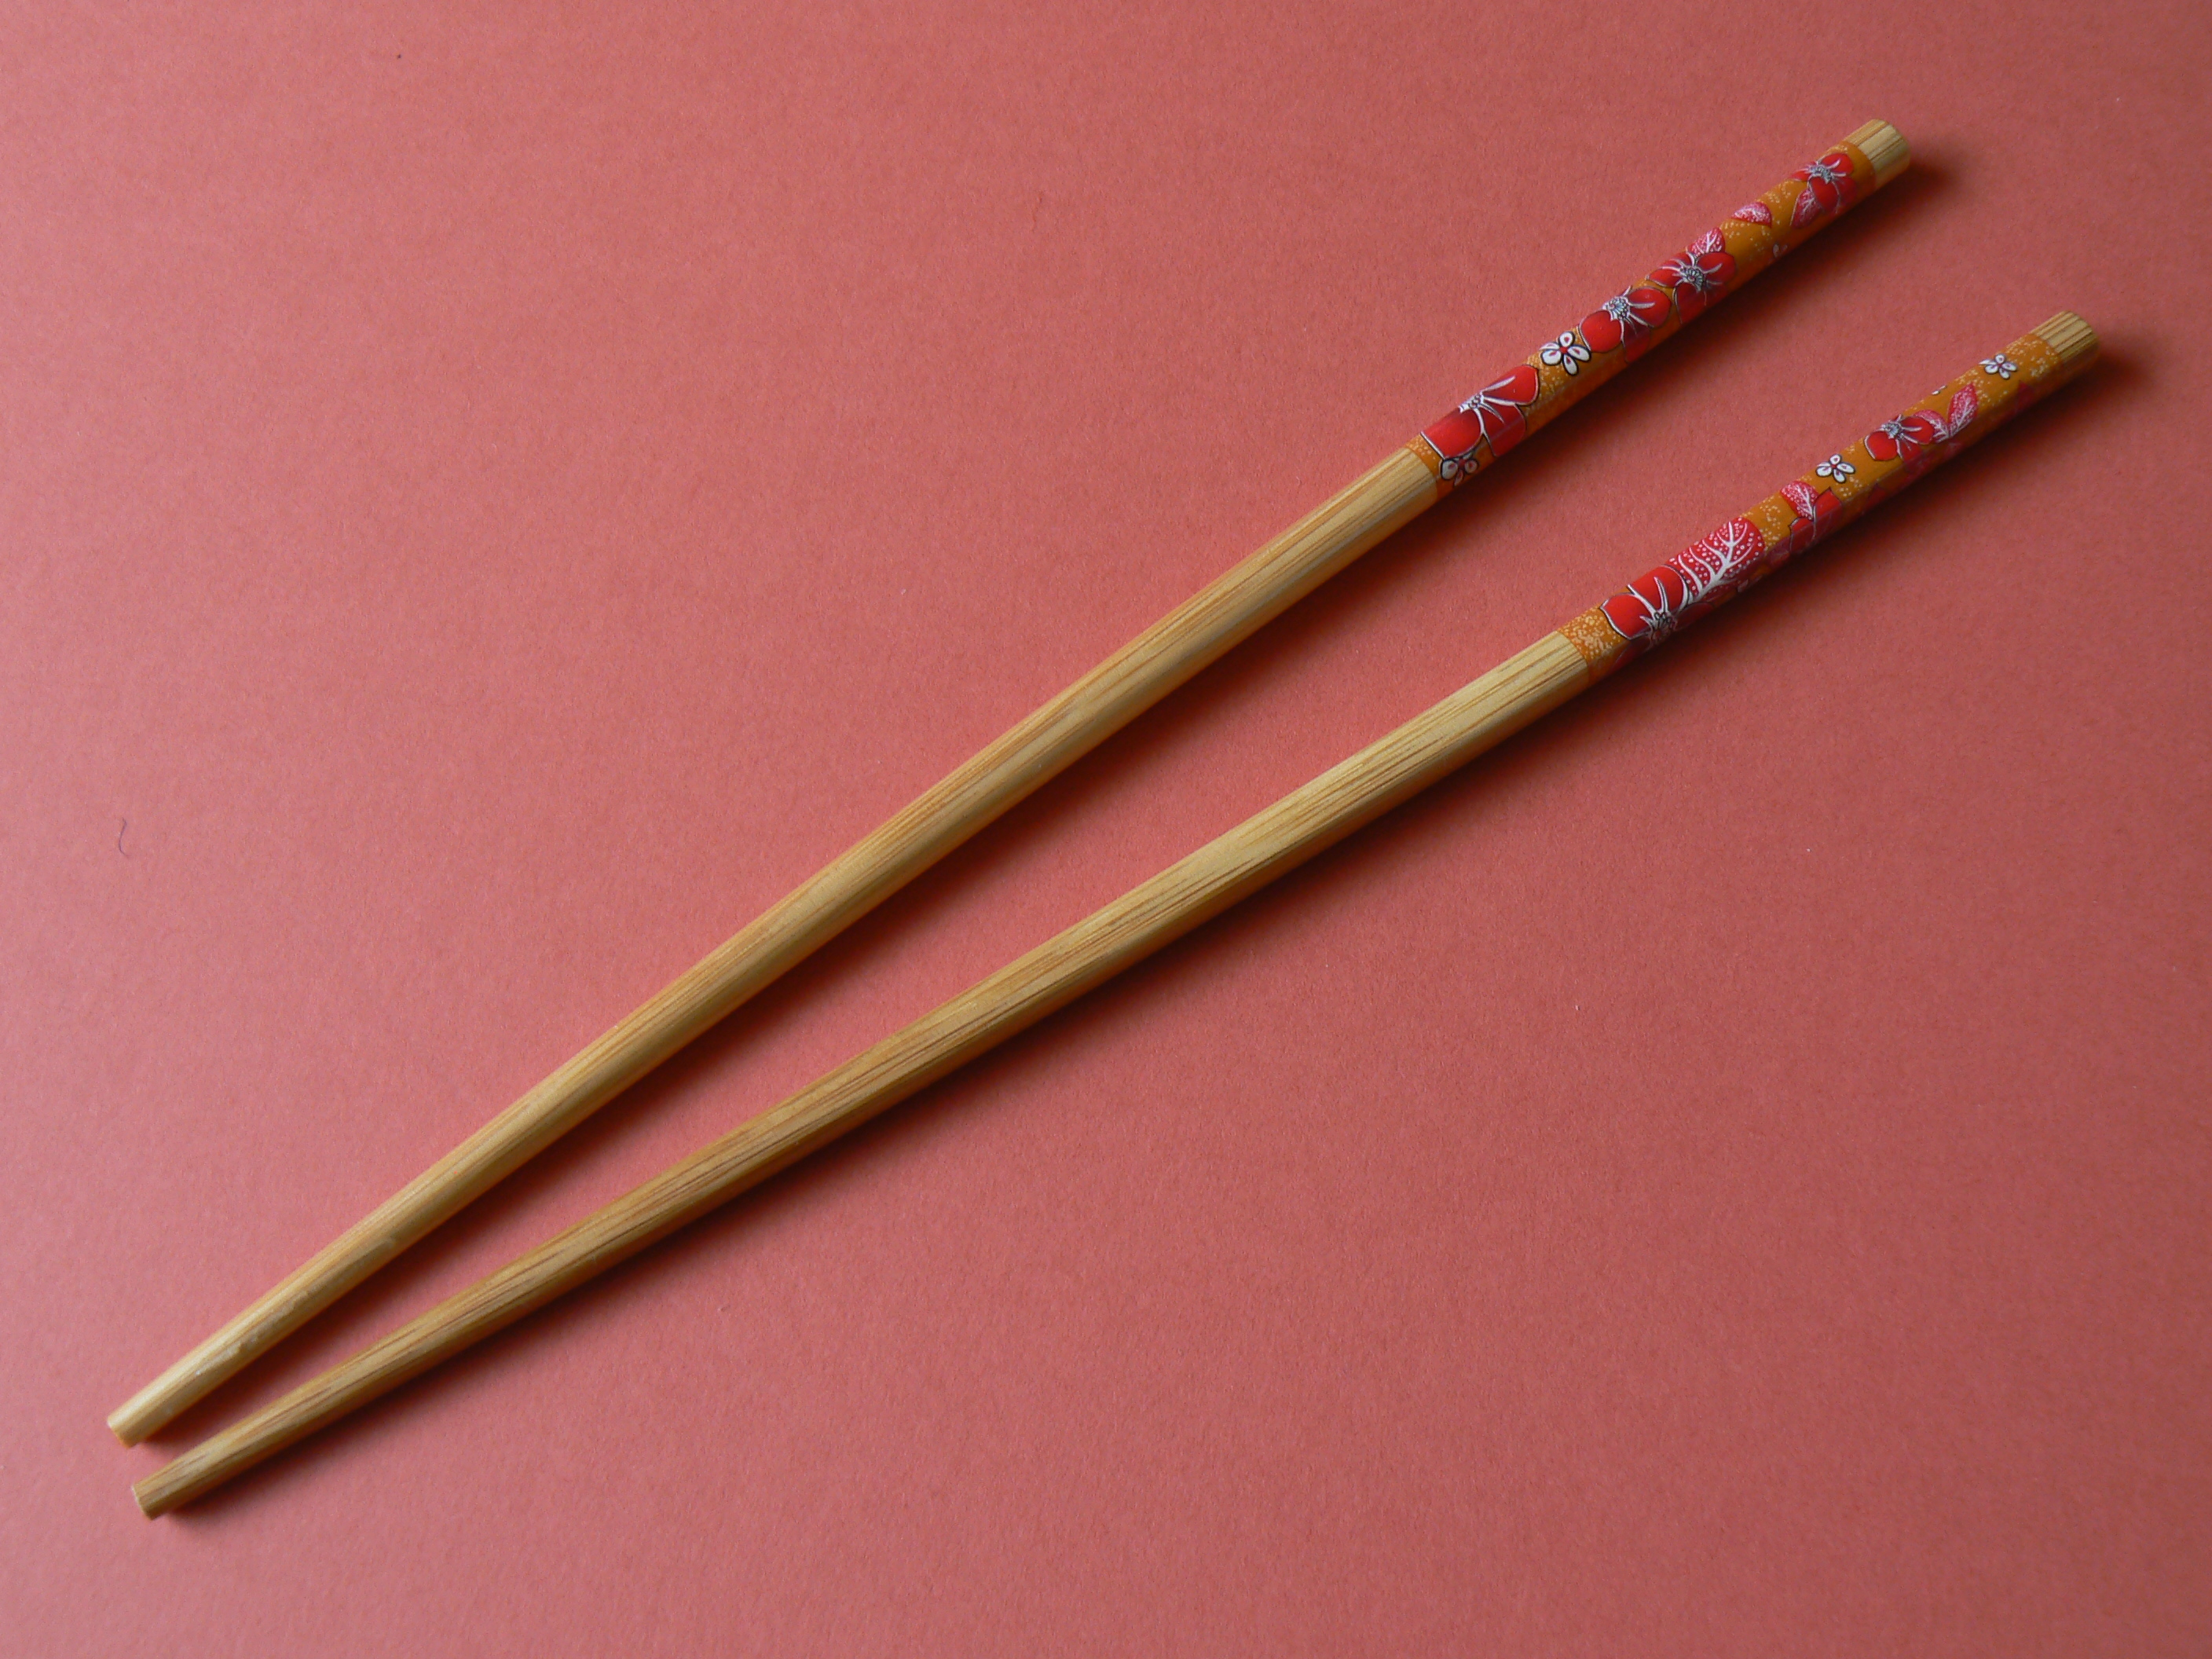 Chopsticks Image